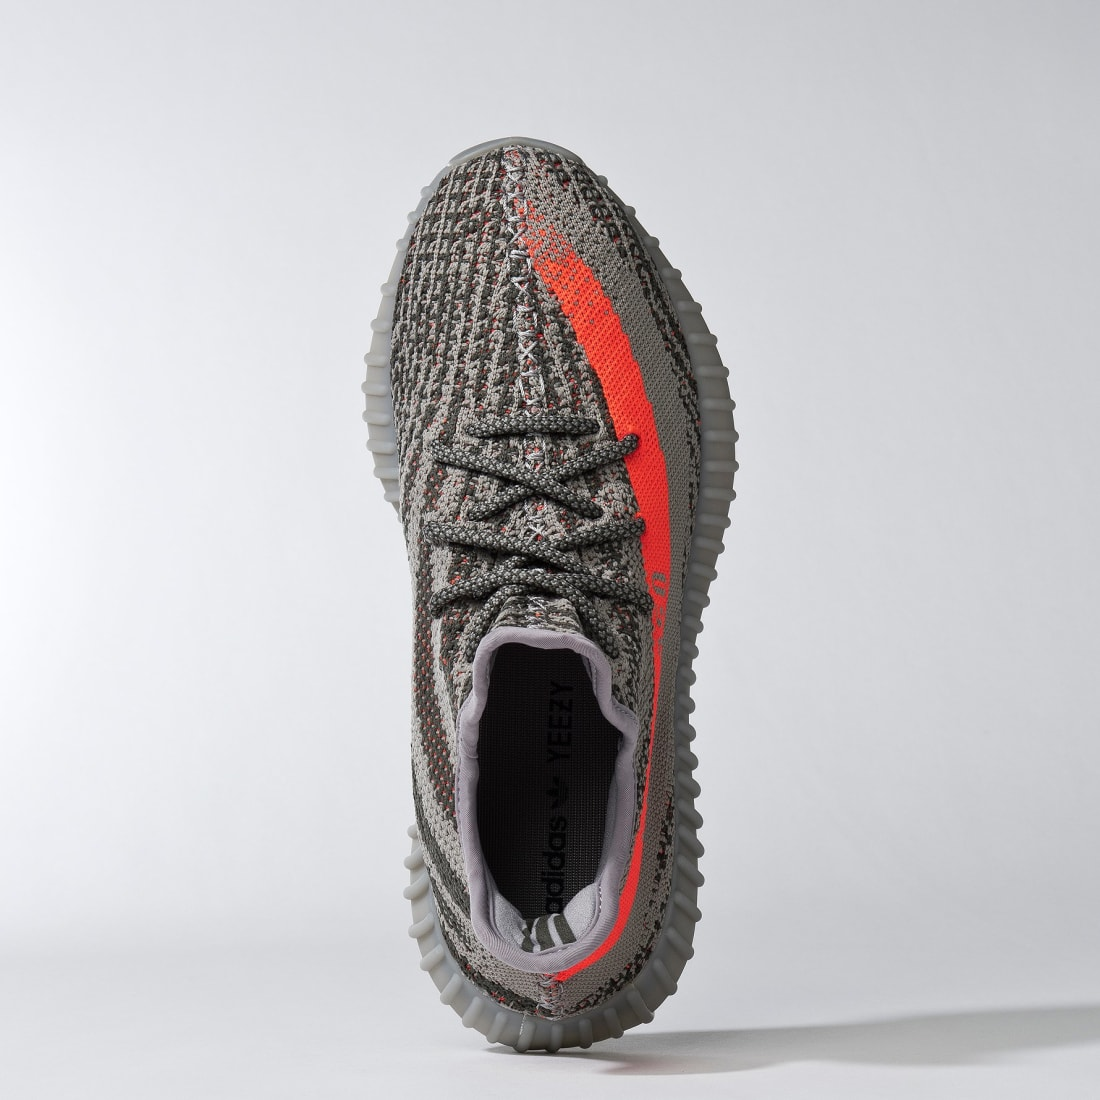 adidas Yeezy Boost 350 MoonRock AQ2660 Amazon